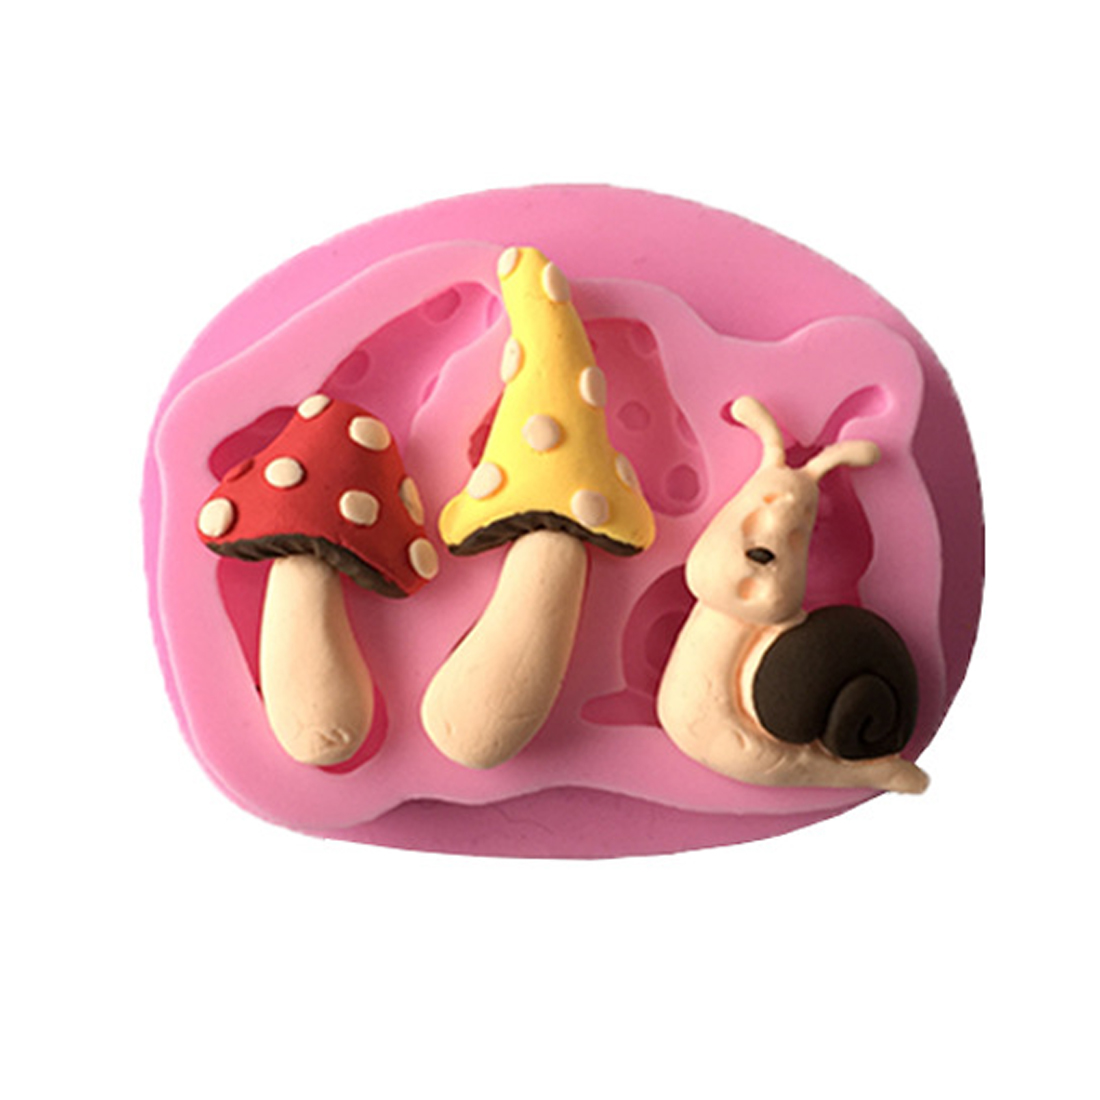 Nice 3D Fairy House Silicone Molds Flower Leaf Lovely Snail Mushroom Fondant Chocolate Candy Mold Cake Decorating Tools Baking